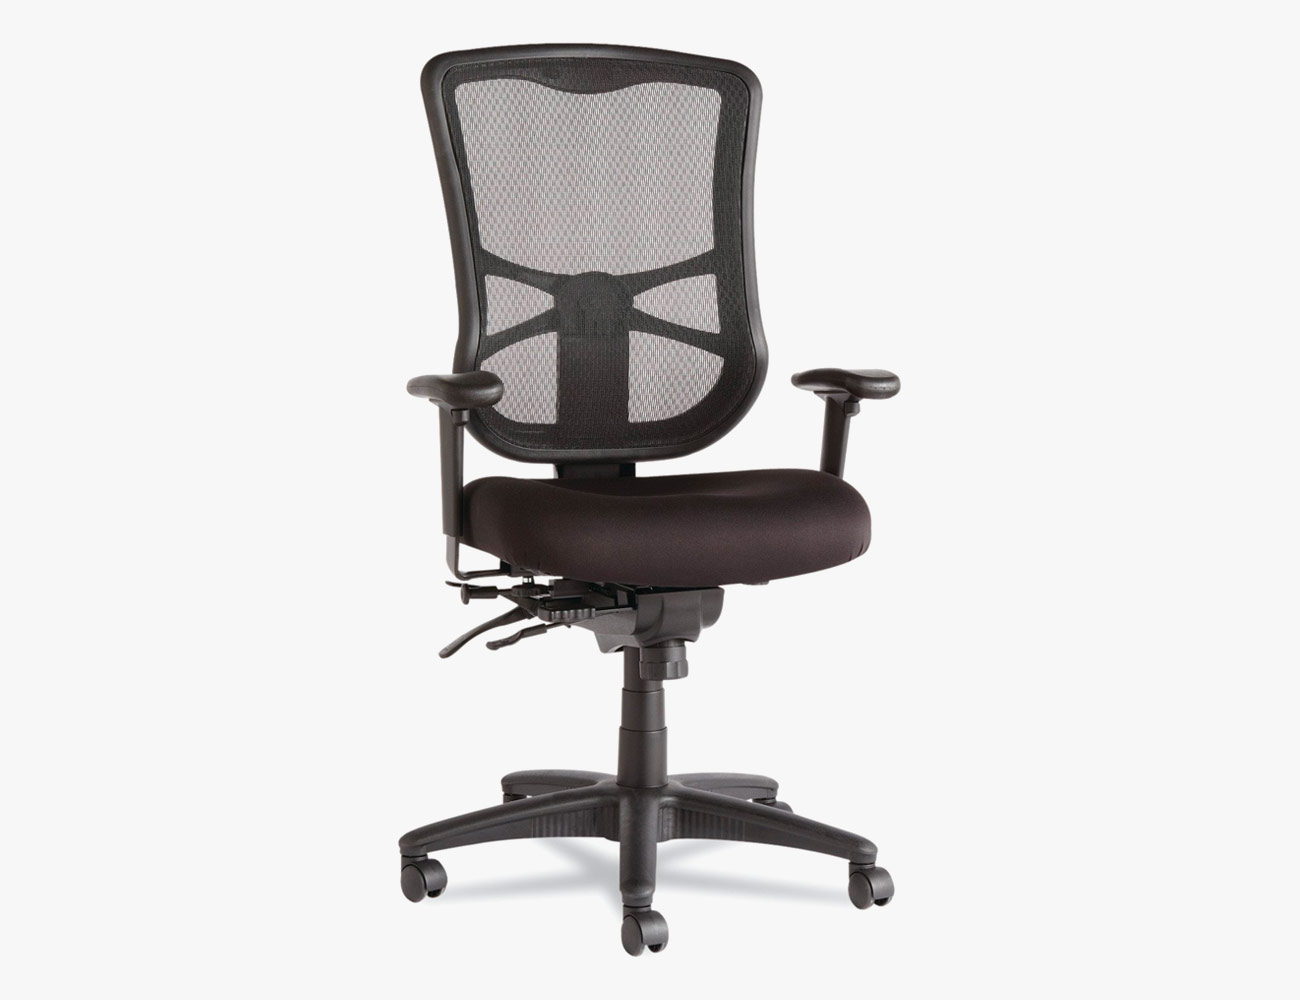 Best Office Chair Under $200: Alera Elusion Chair